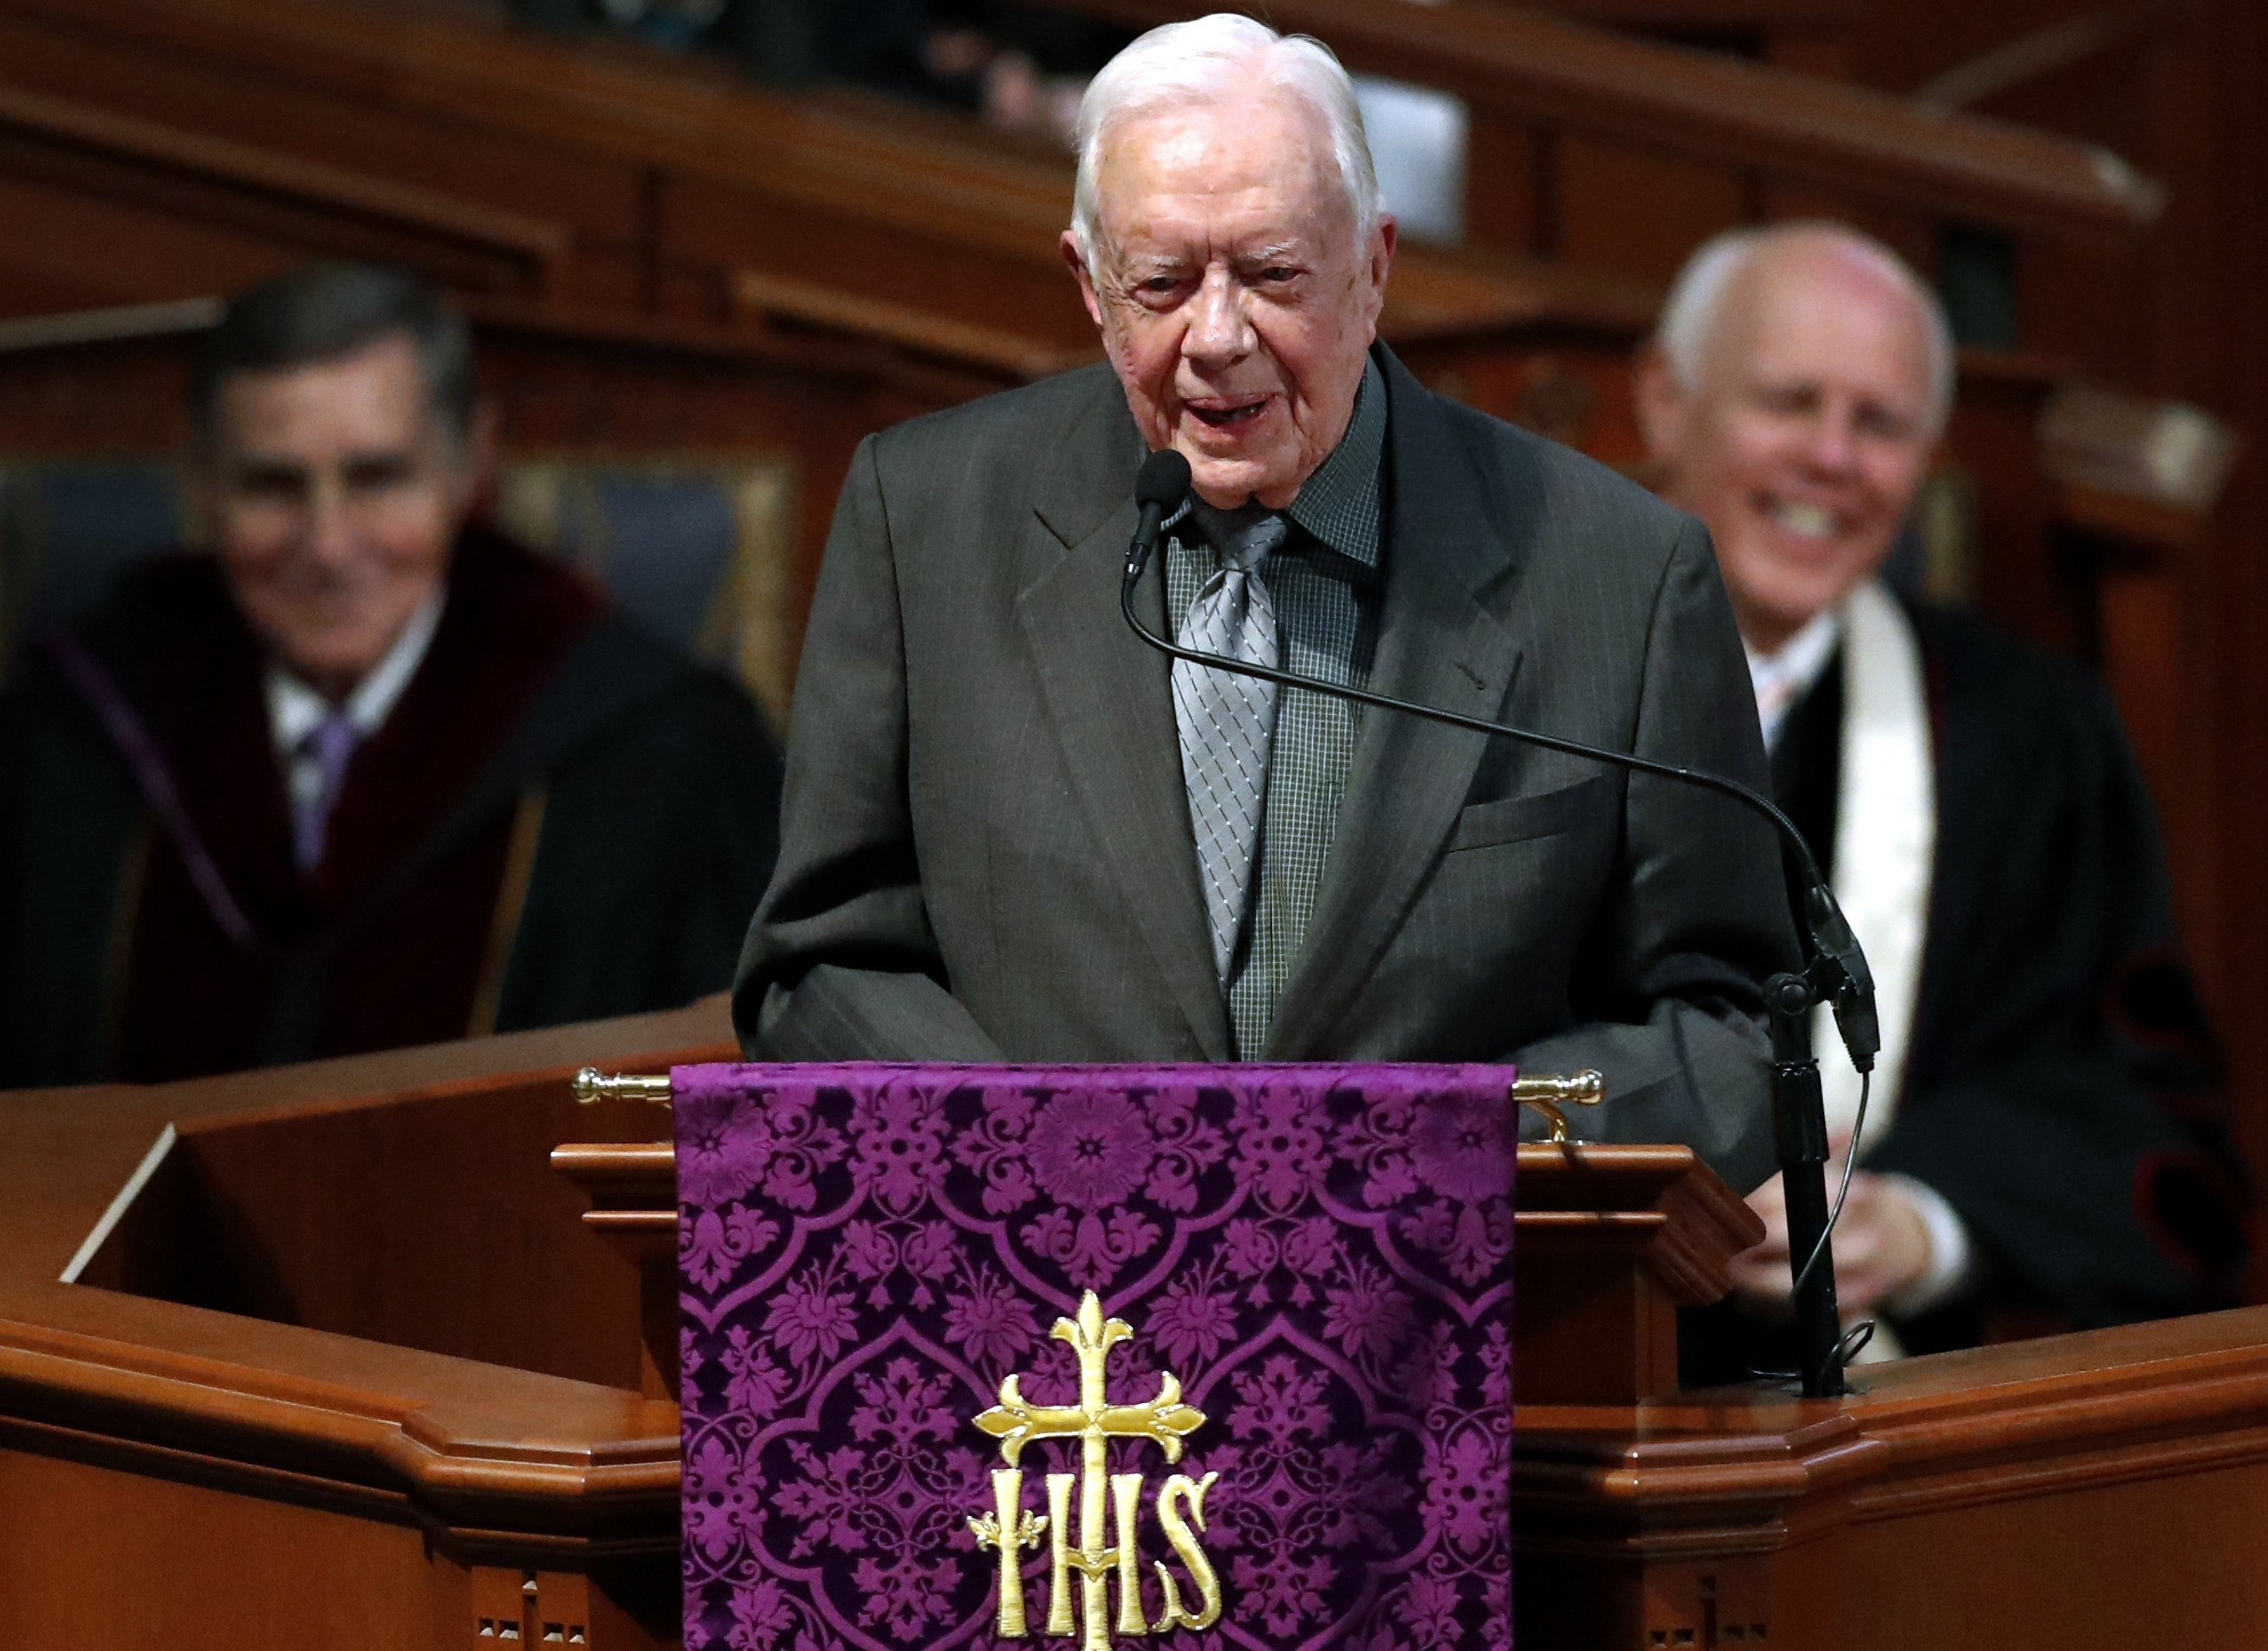 Then and now: World transformed over Jimmy Carter's 94 years